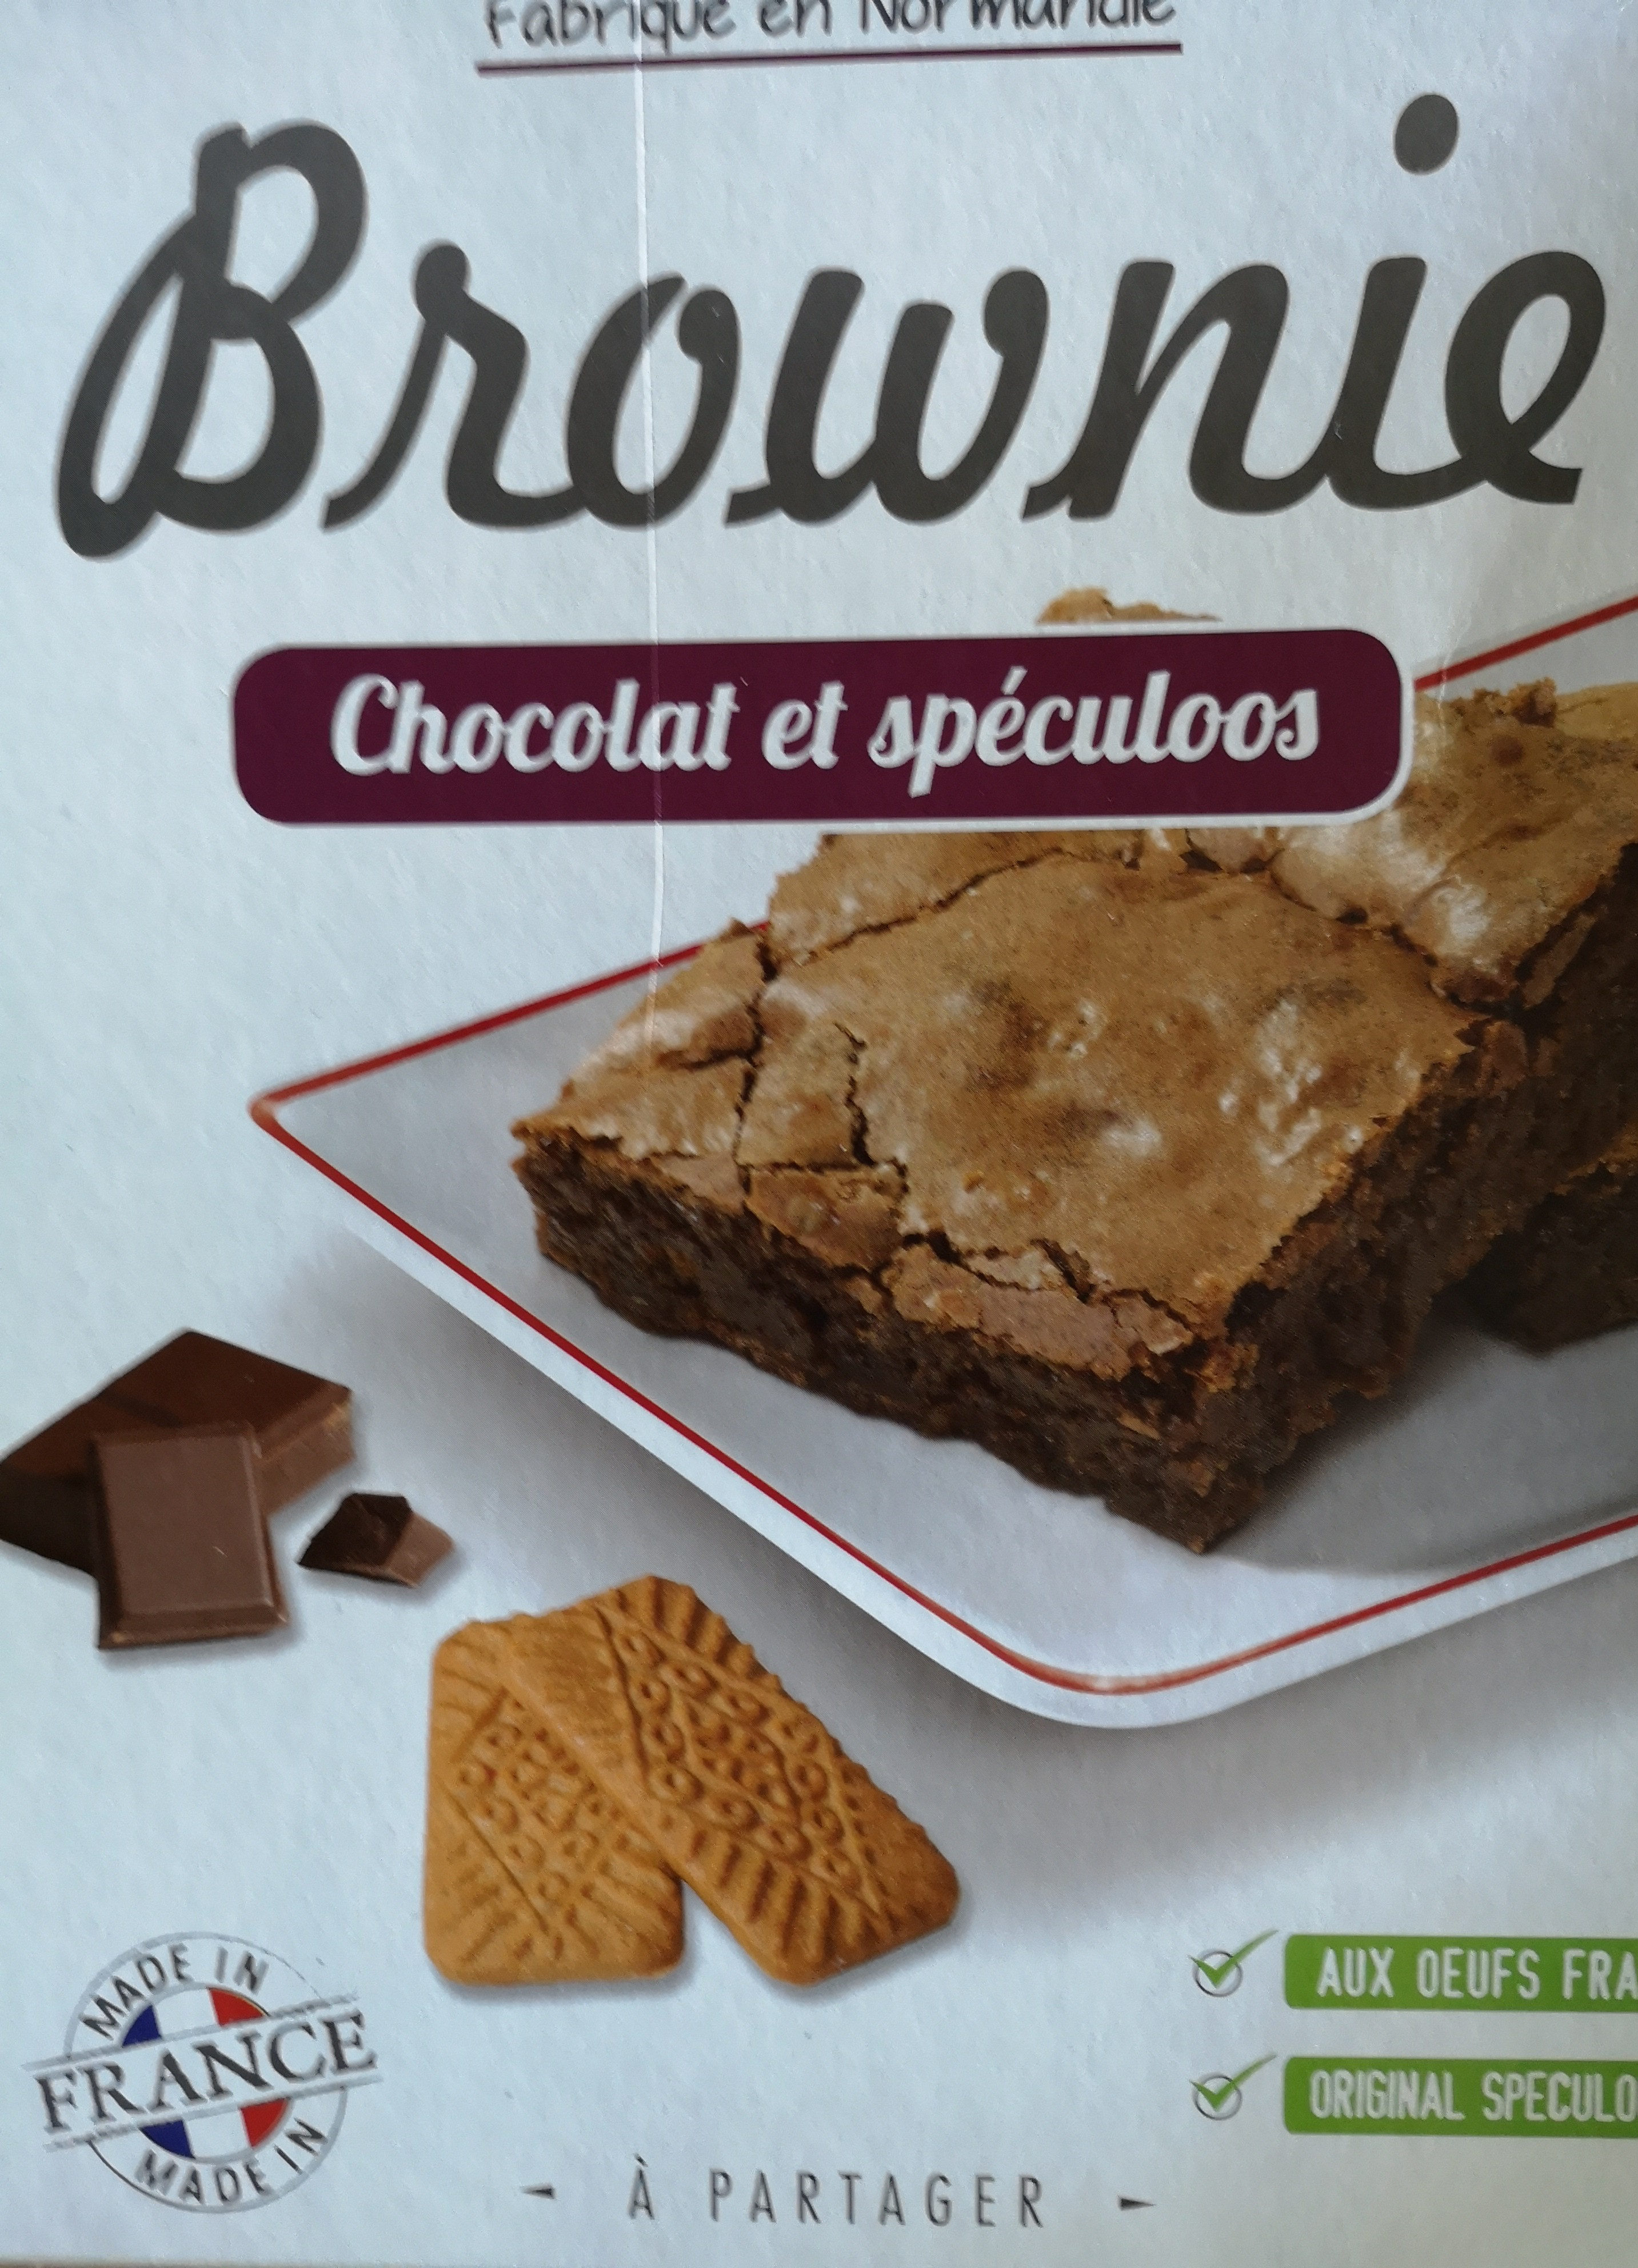 Forchy Brownie De Chocolate Con Speculoos - Product - fr